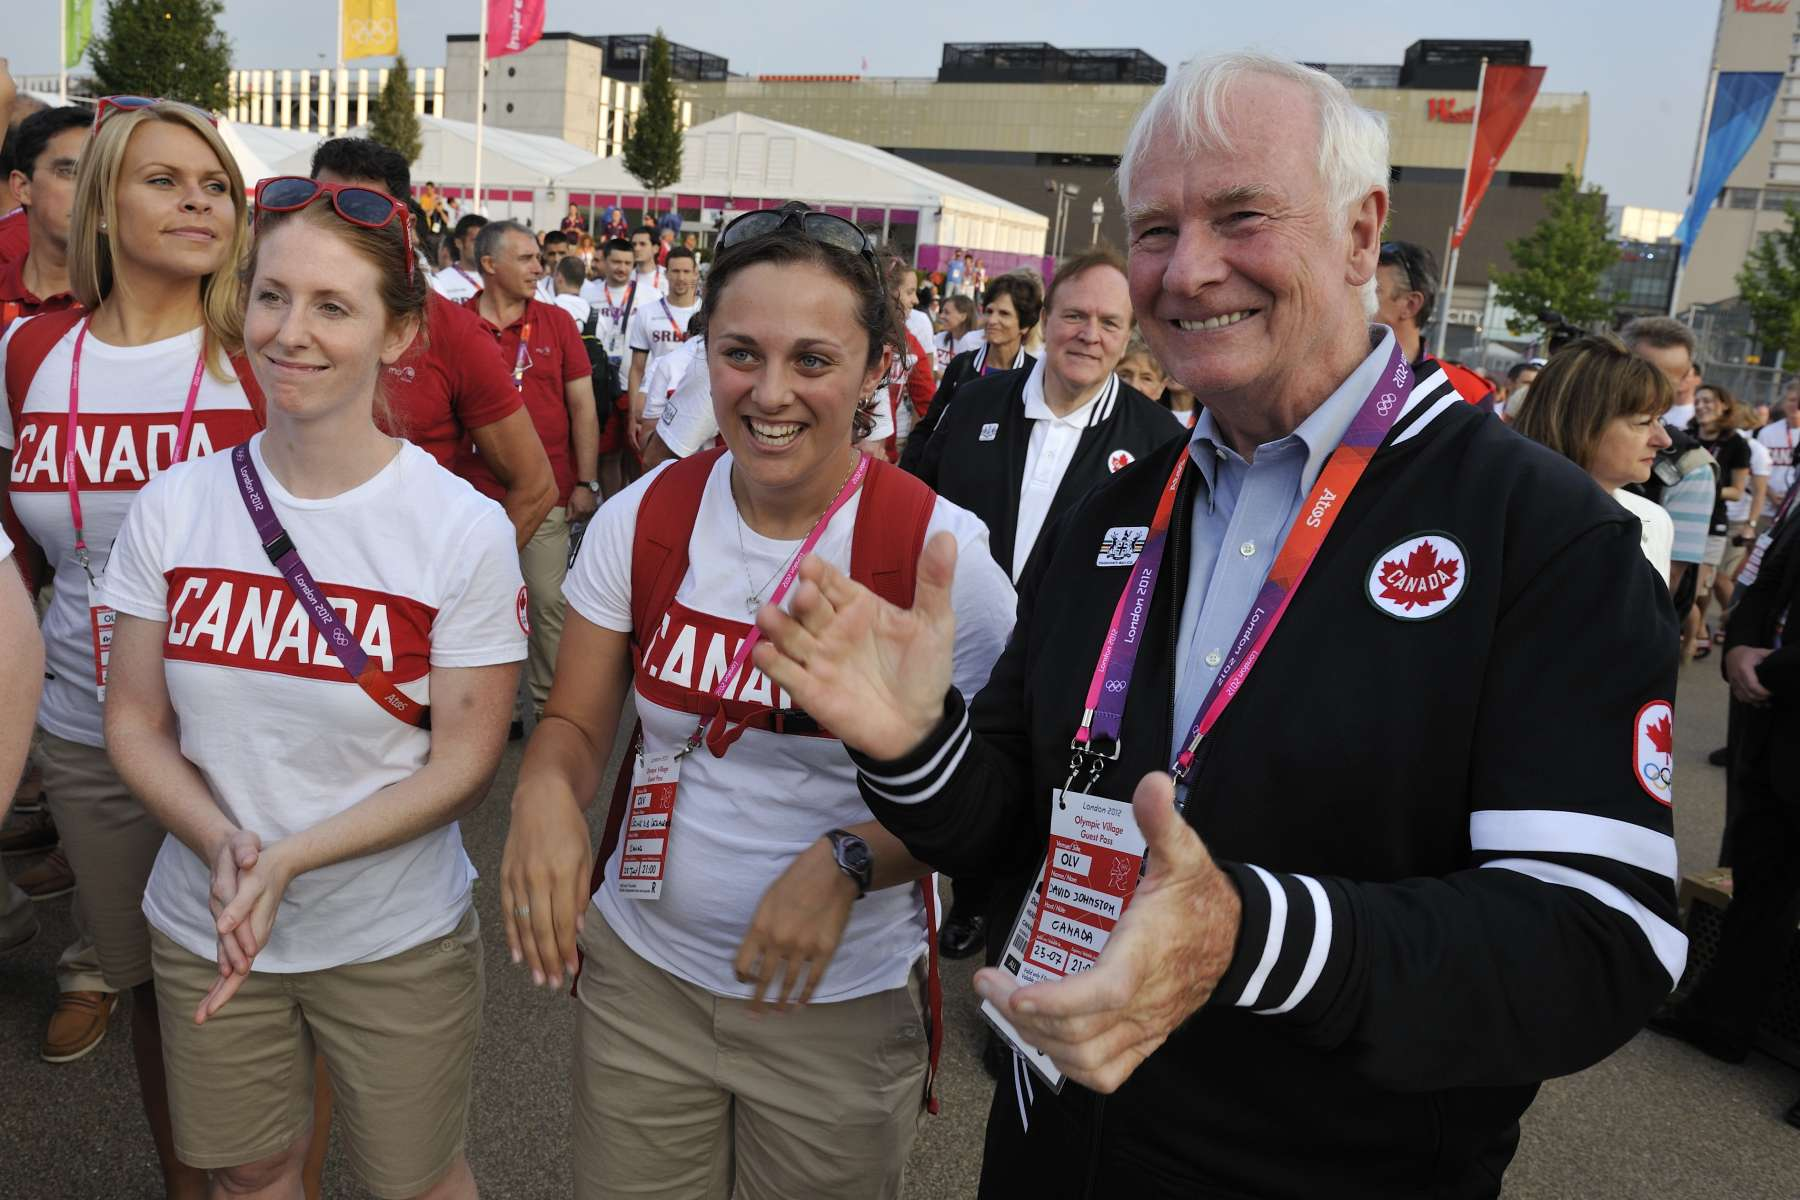 His Excellency spoke with Canadian athletes and wished them good luck.